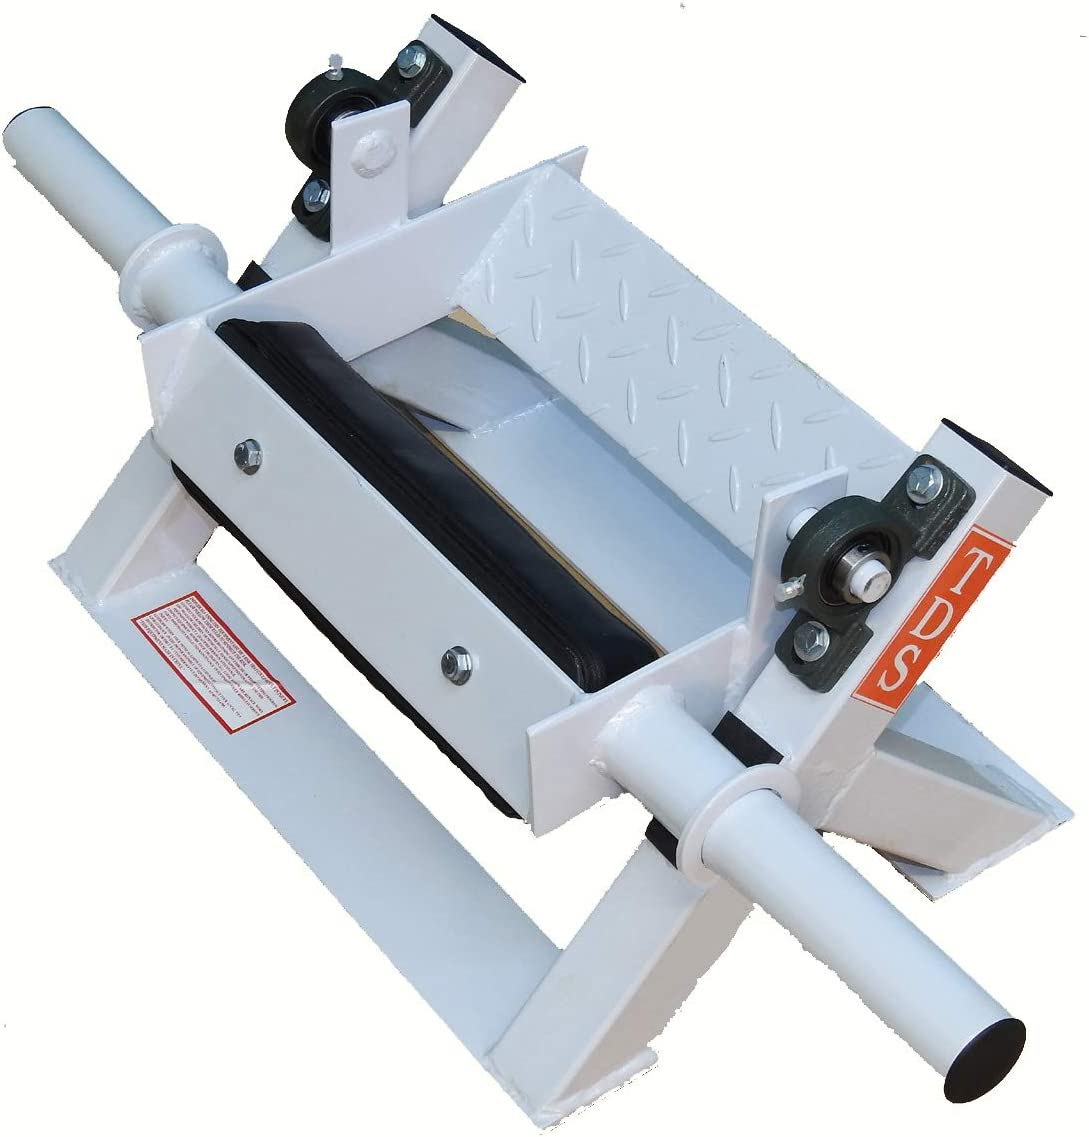 Tibia Dorsi to Exercise Each Leg independently or simultaneous. Pivots on 2 Industrial Grade Pillow Block Bearings. This is a Commercial Quality Machine. Thick Padding for Comfortable use